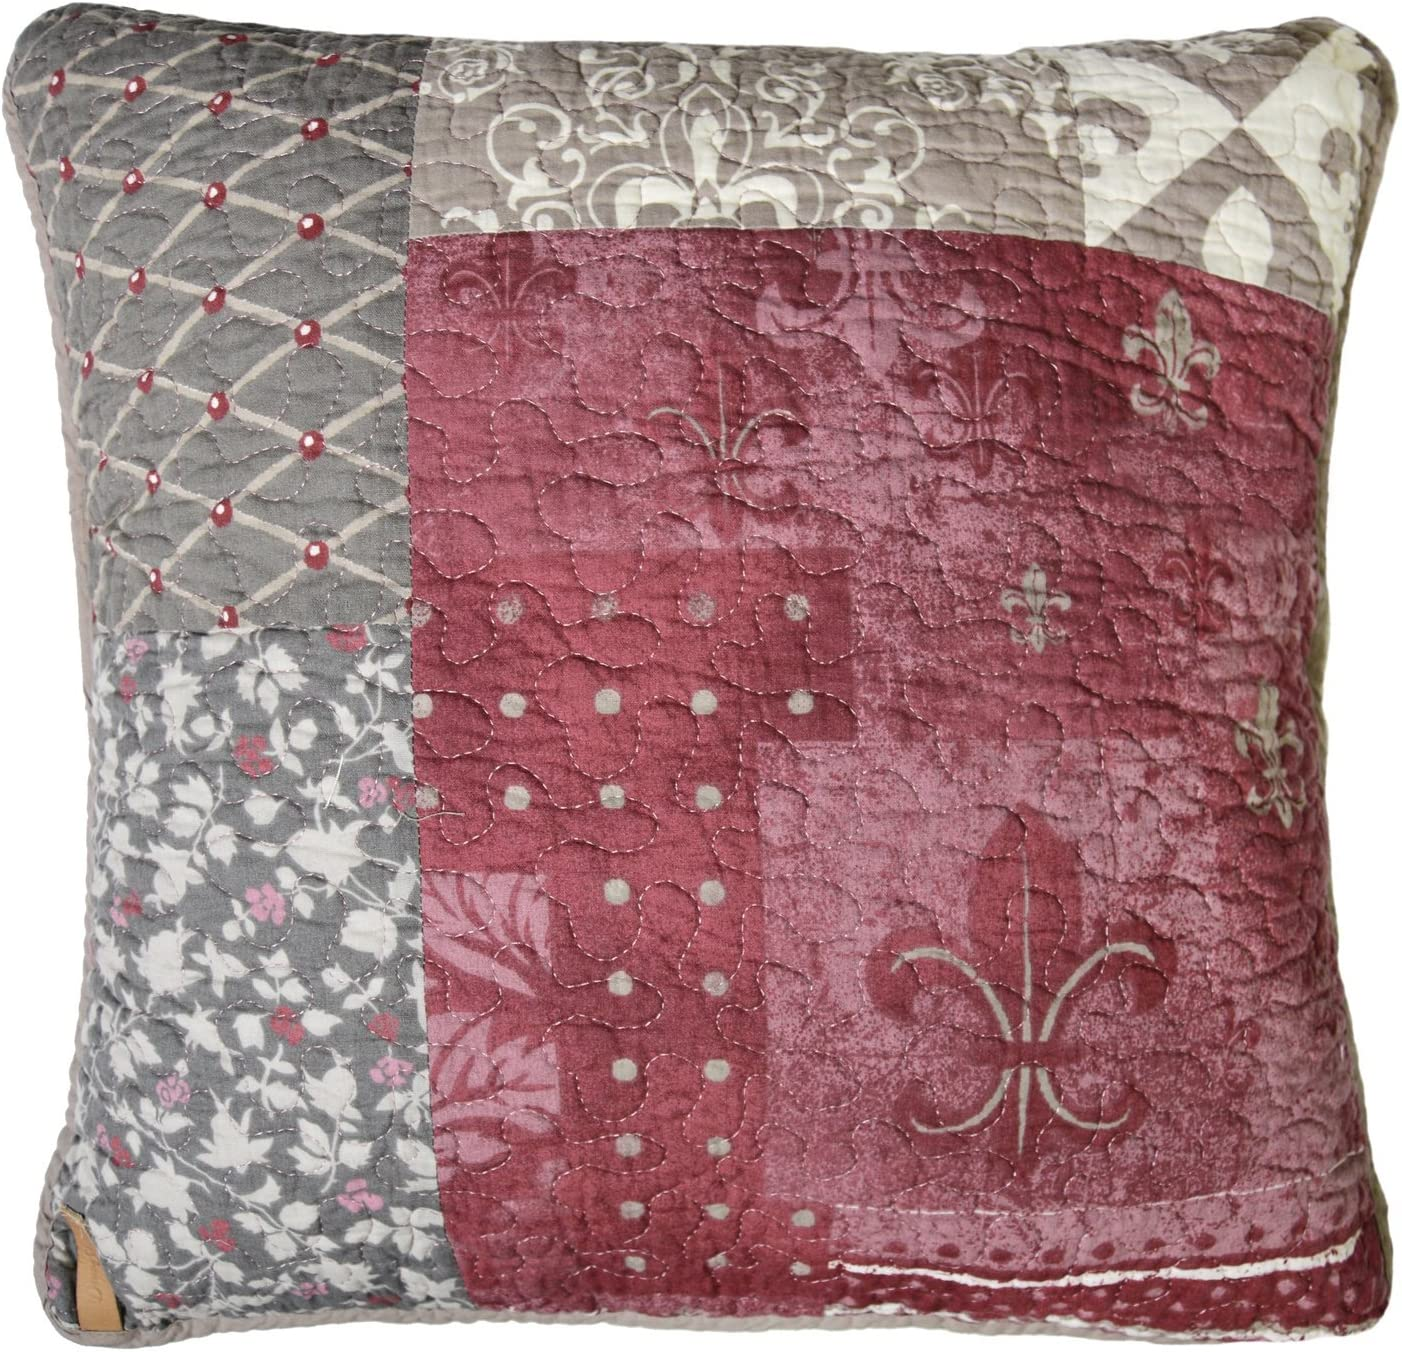 Donna Sharp Throw Pillow - Fleur de Lis Square Contemporary Decorative Throw Pillow with Multicolored Pattern - Square